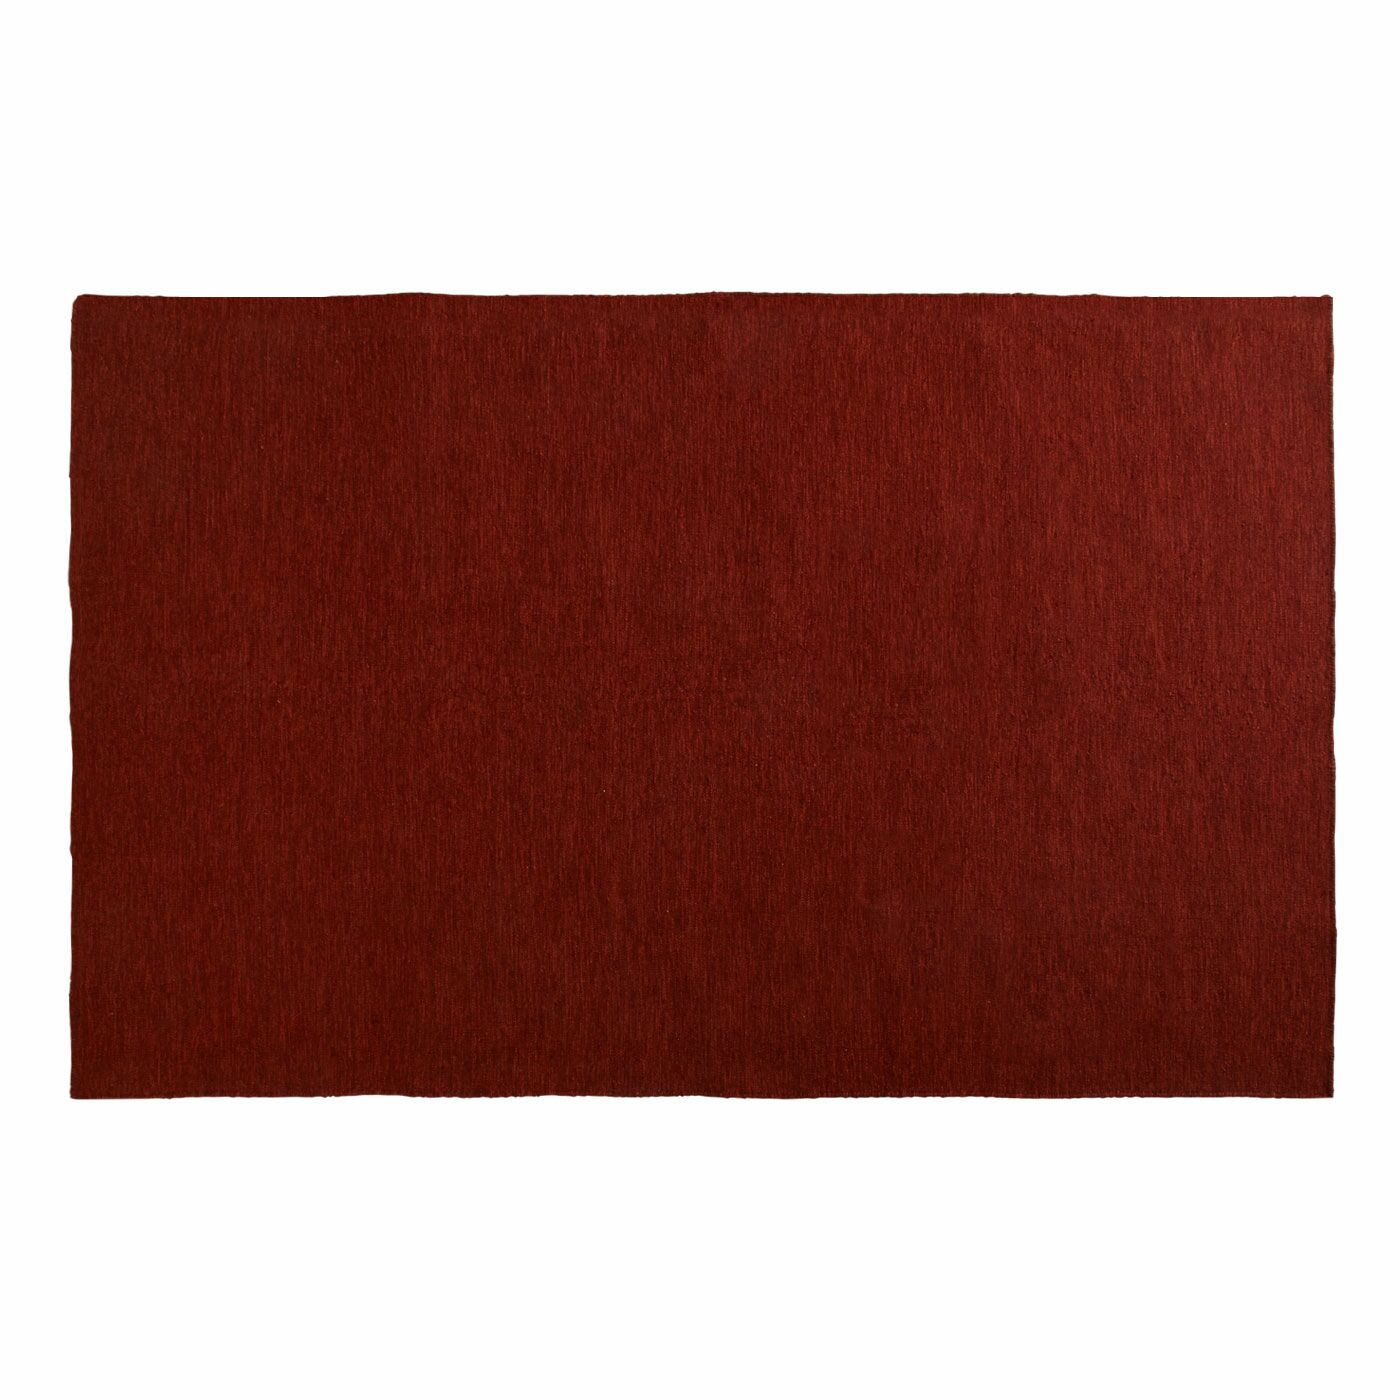 Golf Paprika Red Indoor/Outdoor Area Rug Rug Size: 5' x 8'